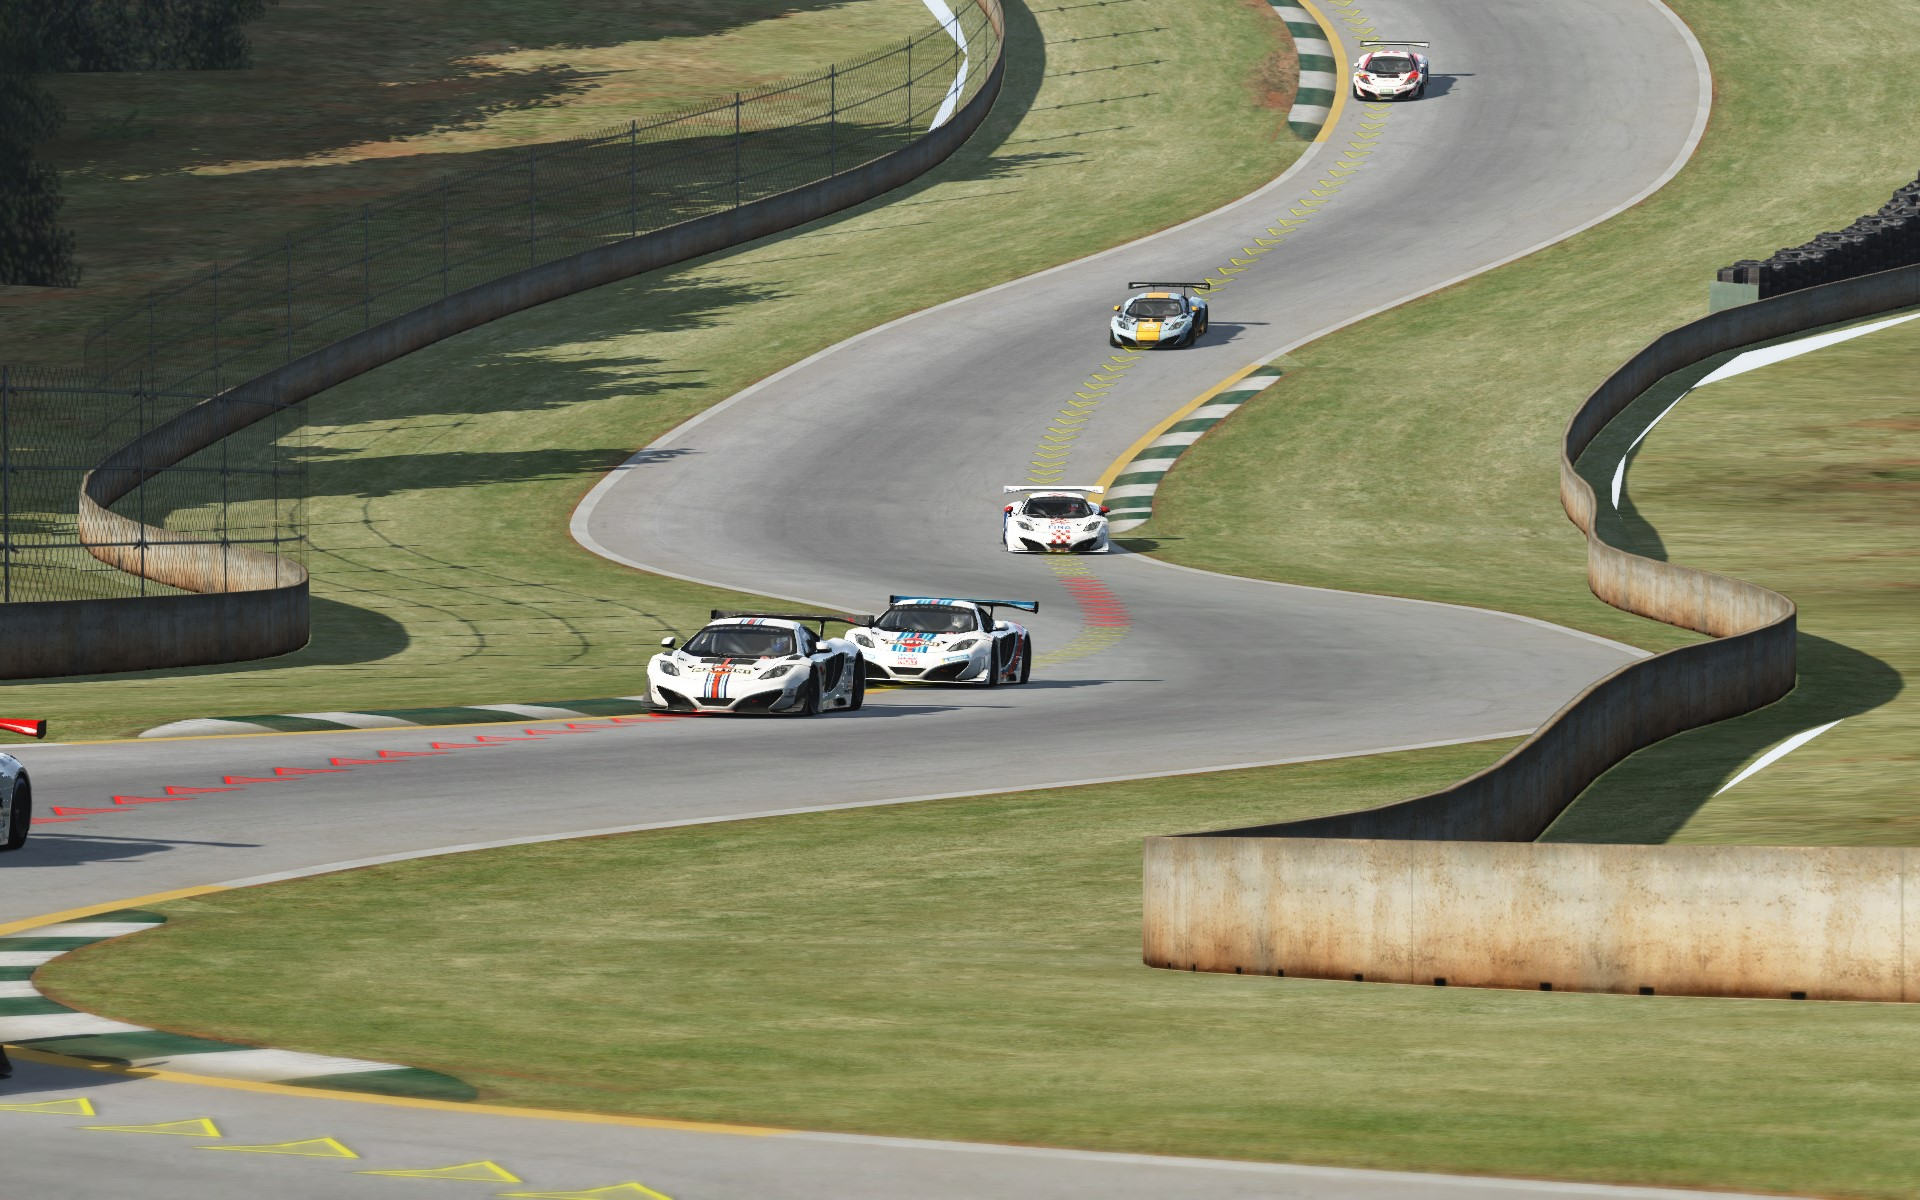 Screenshot_mclaren_mp412c_gt3_road atlanta_10-8-115-13-58-54.jpg